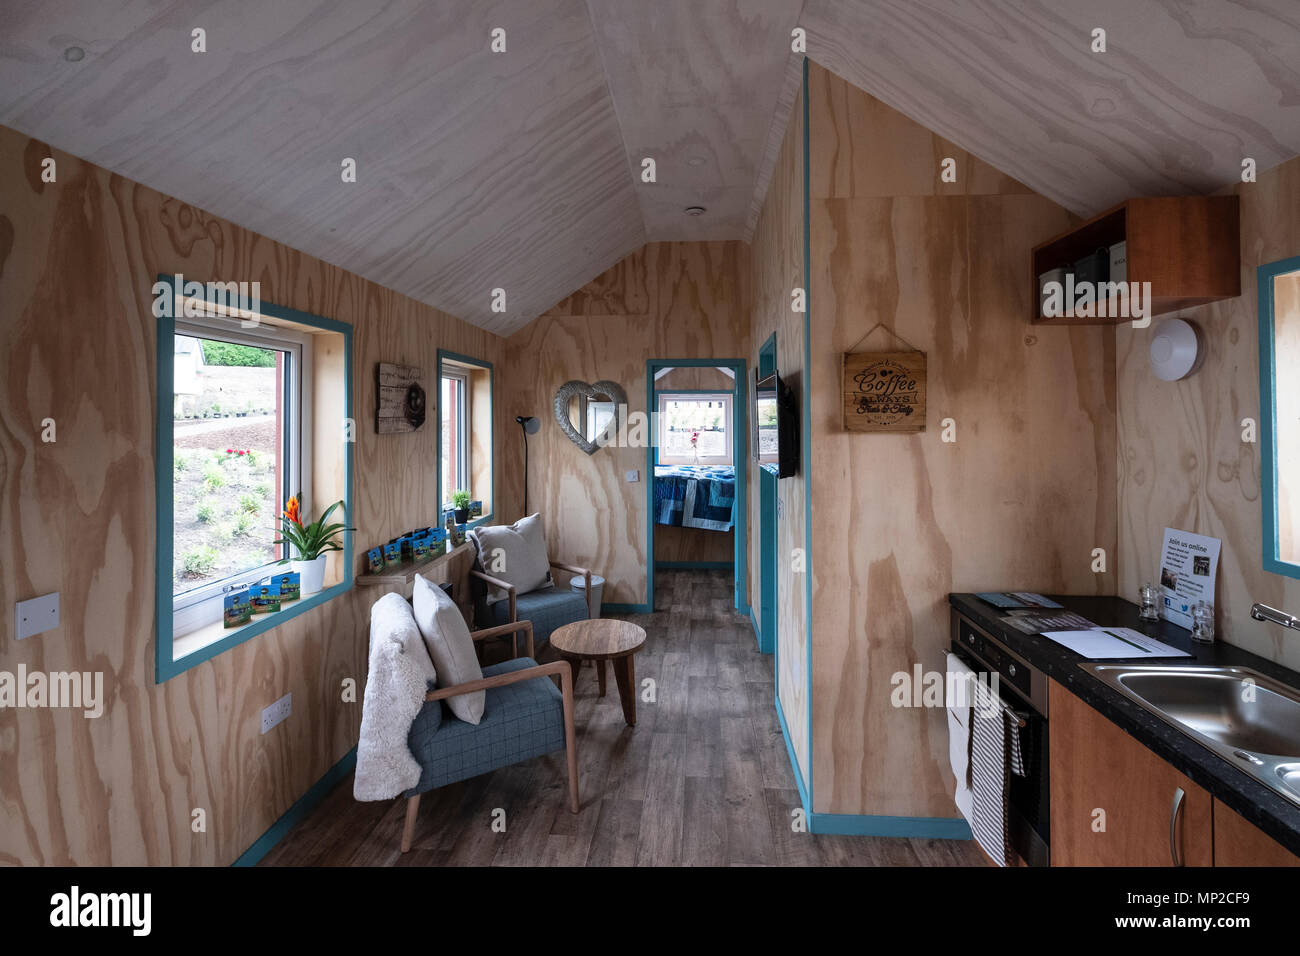 View of interior of houses at the Social Bite Village in Granton built by Social Bite organisation for homeless people, Edinburgh, Scotland, UK - Stock Image